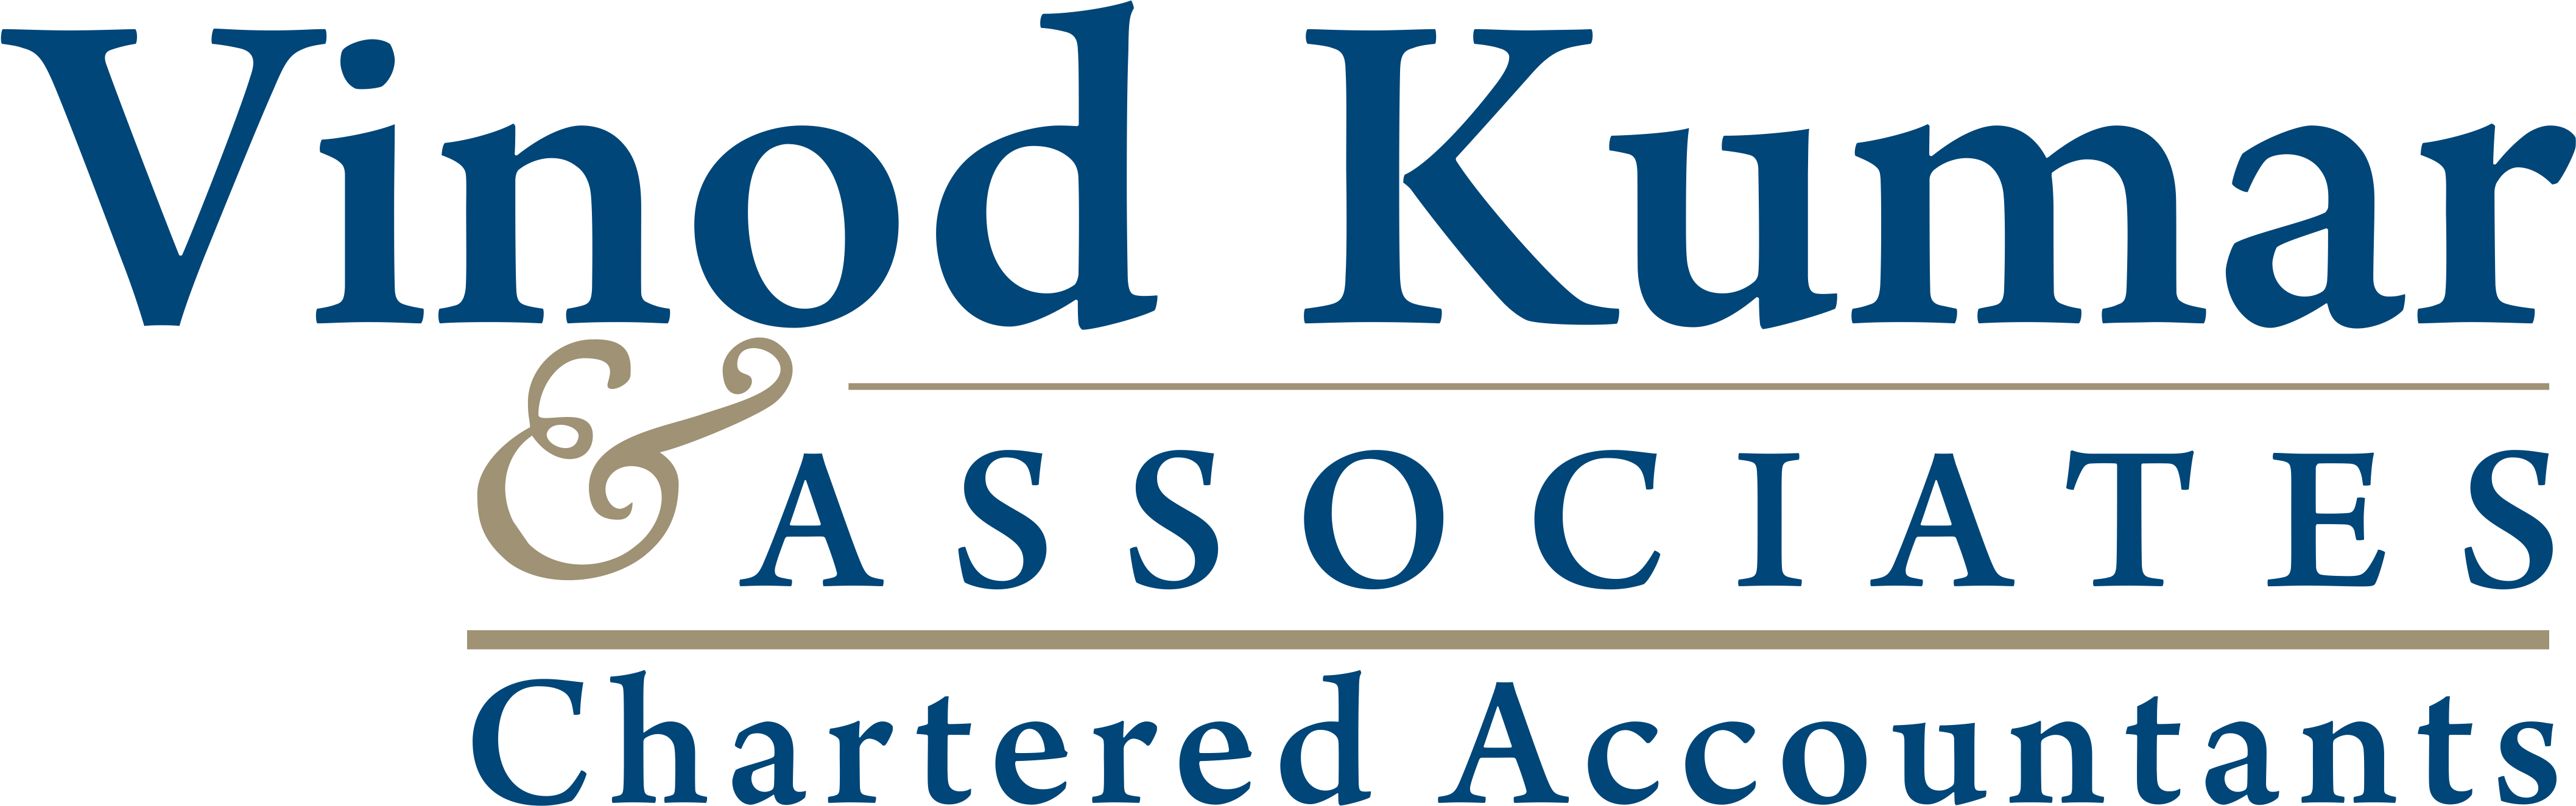 Vinod Kumar & Associates Chartered Accountants - Indian CA Firm